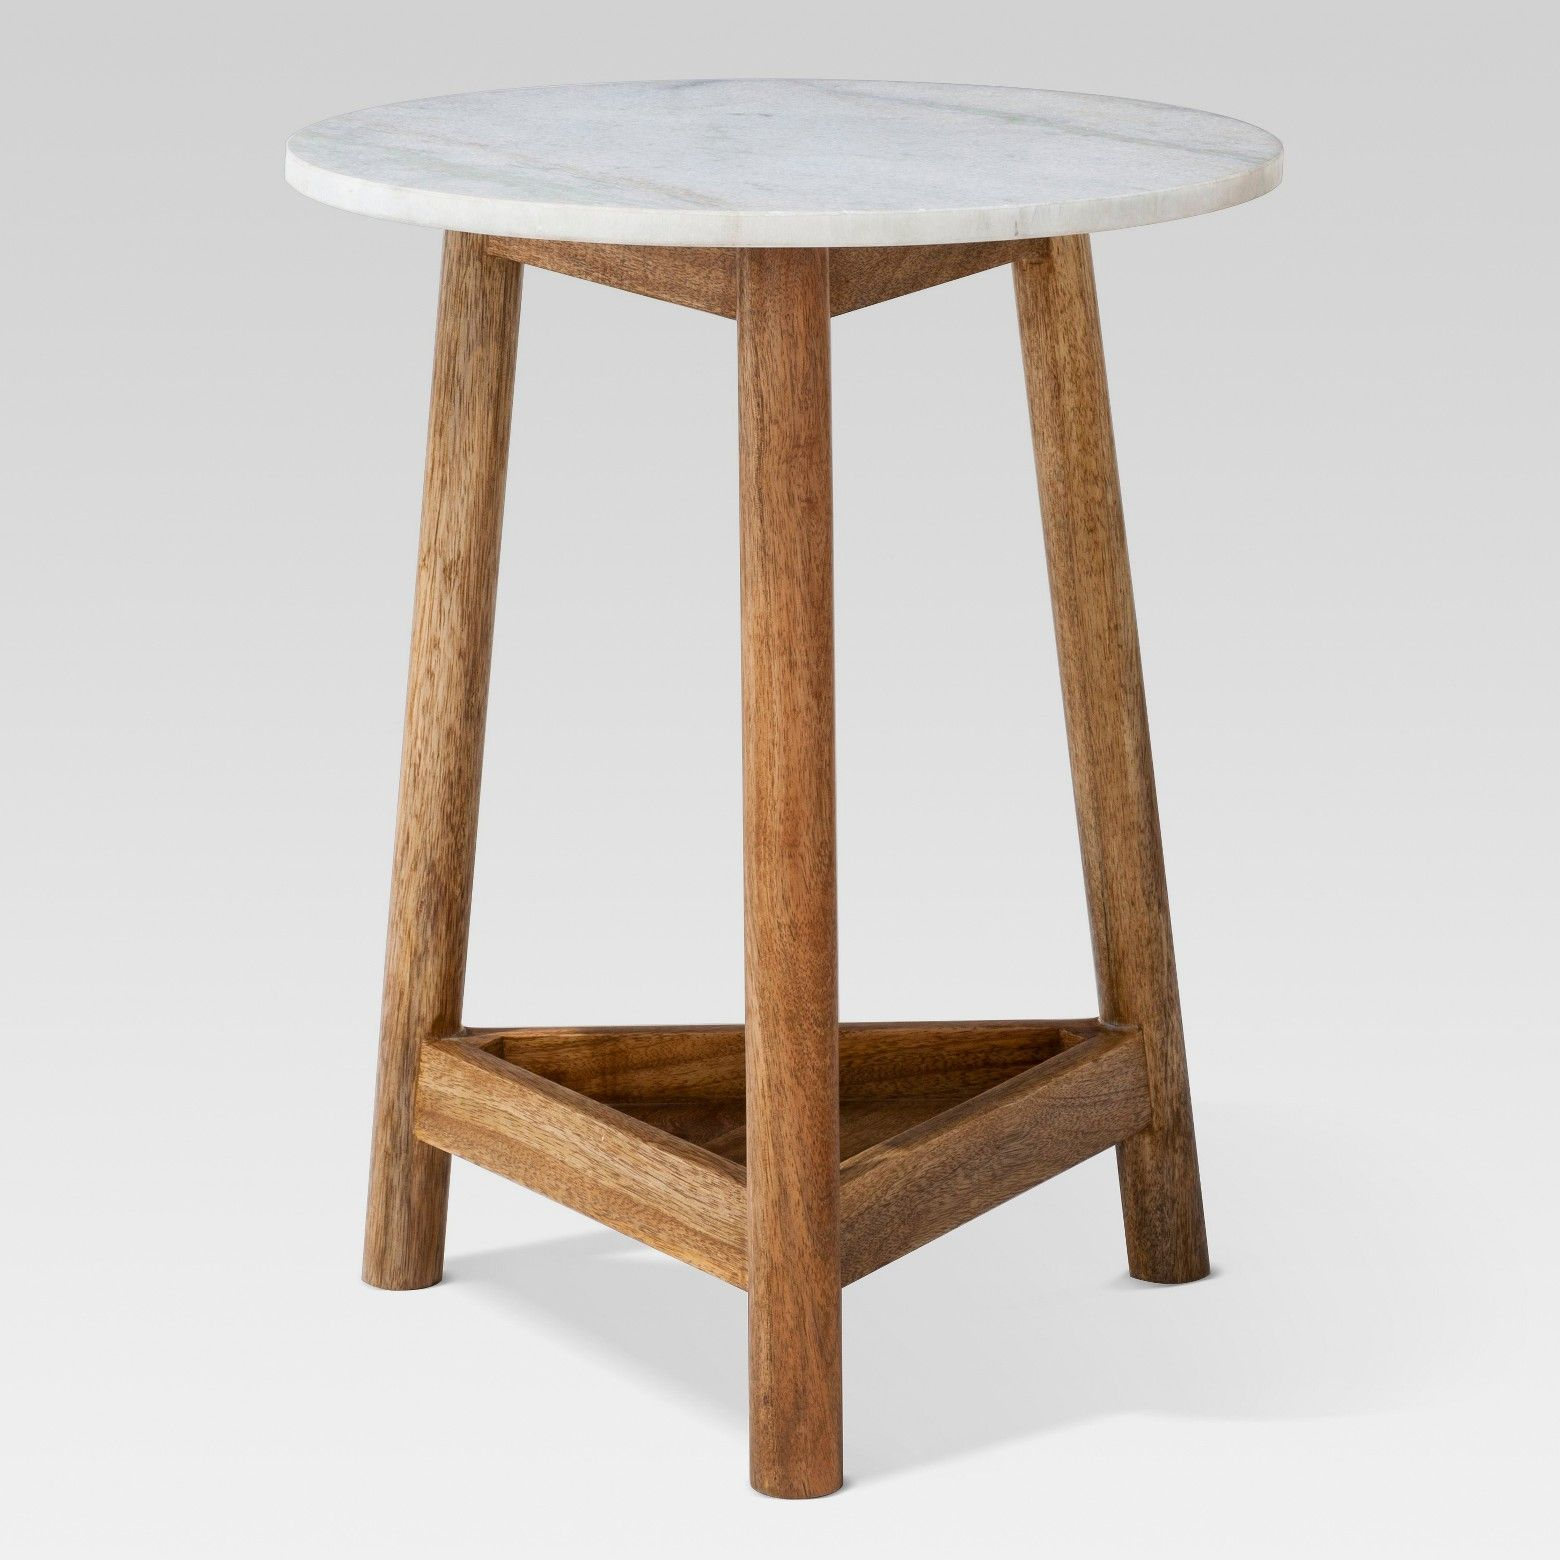 the lanham marble top side table from threshold has beautiful accent target blend mango wood and instantly becoming focal point any room you place farmhouse style end tables